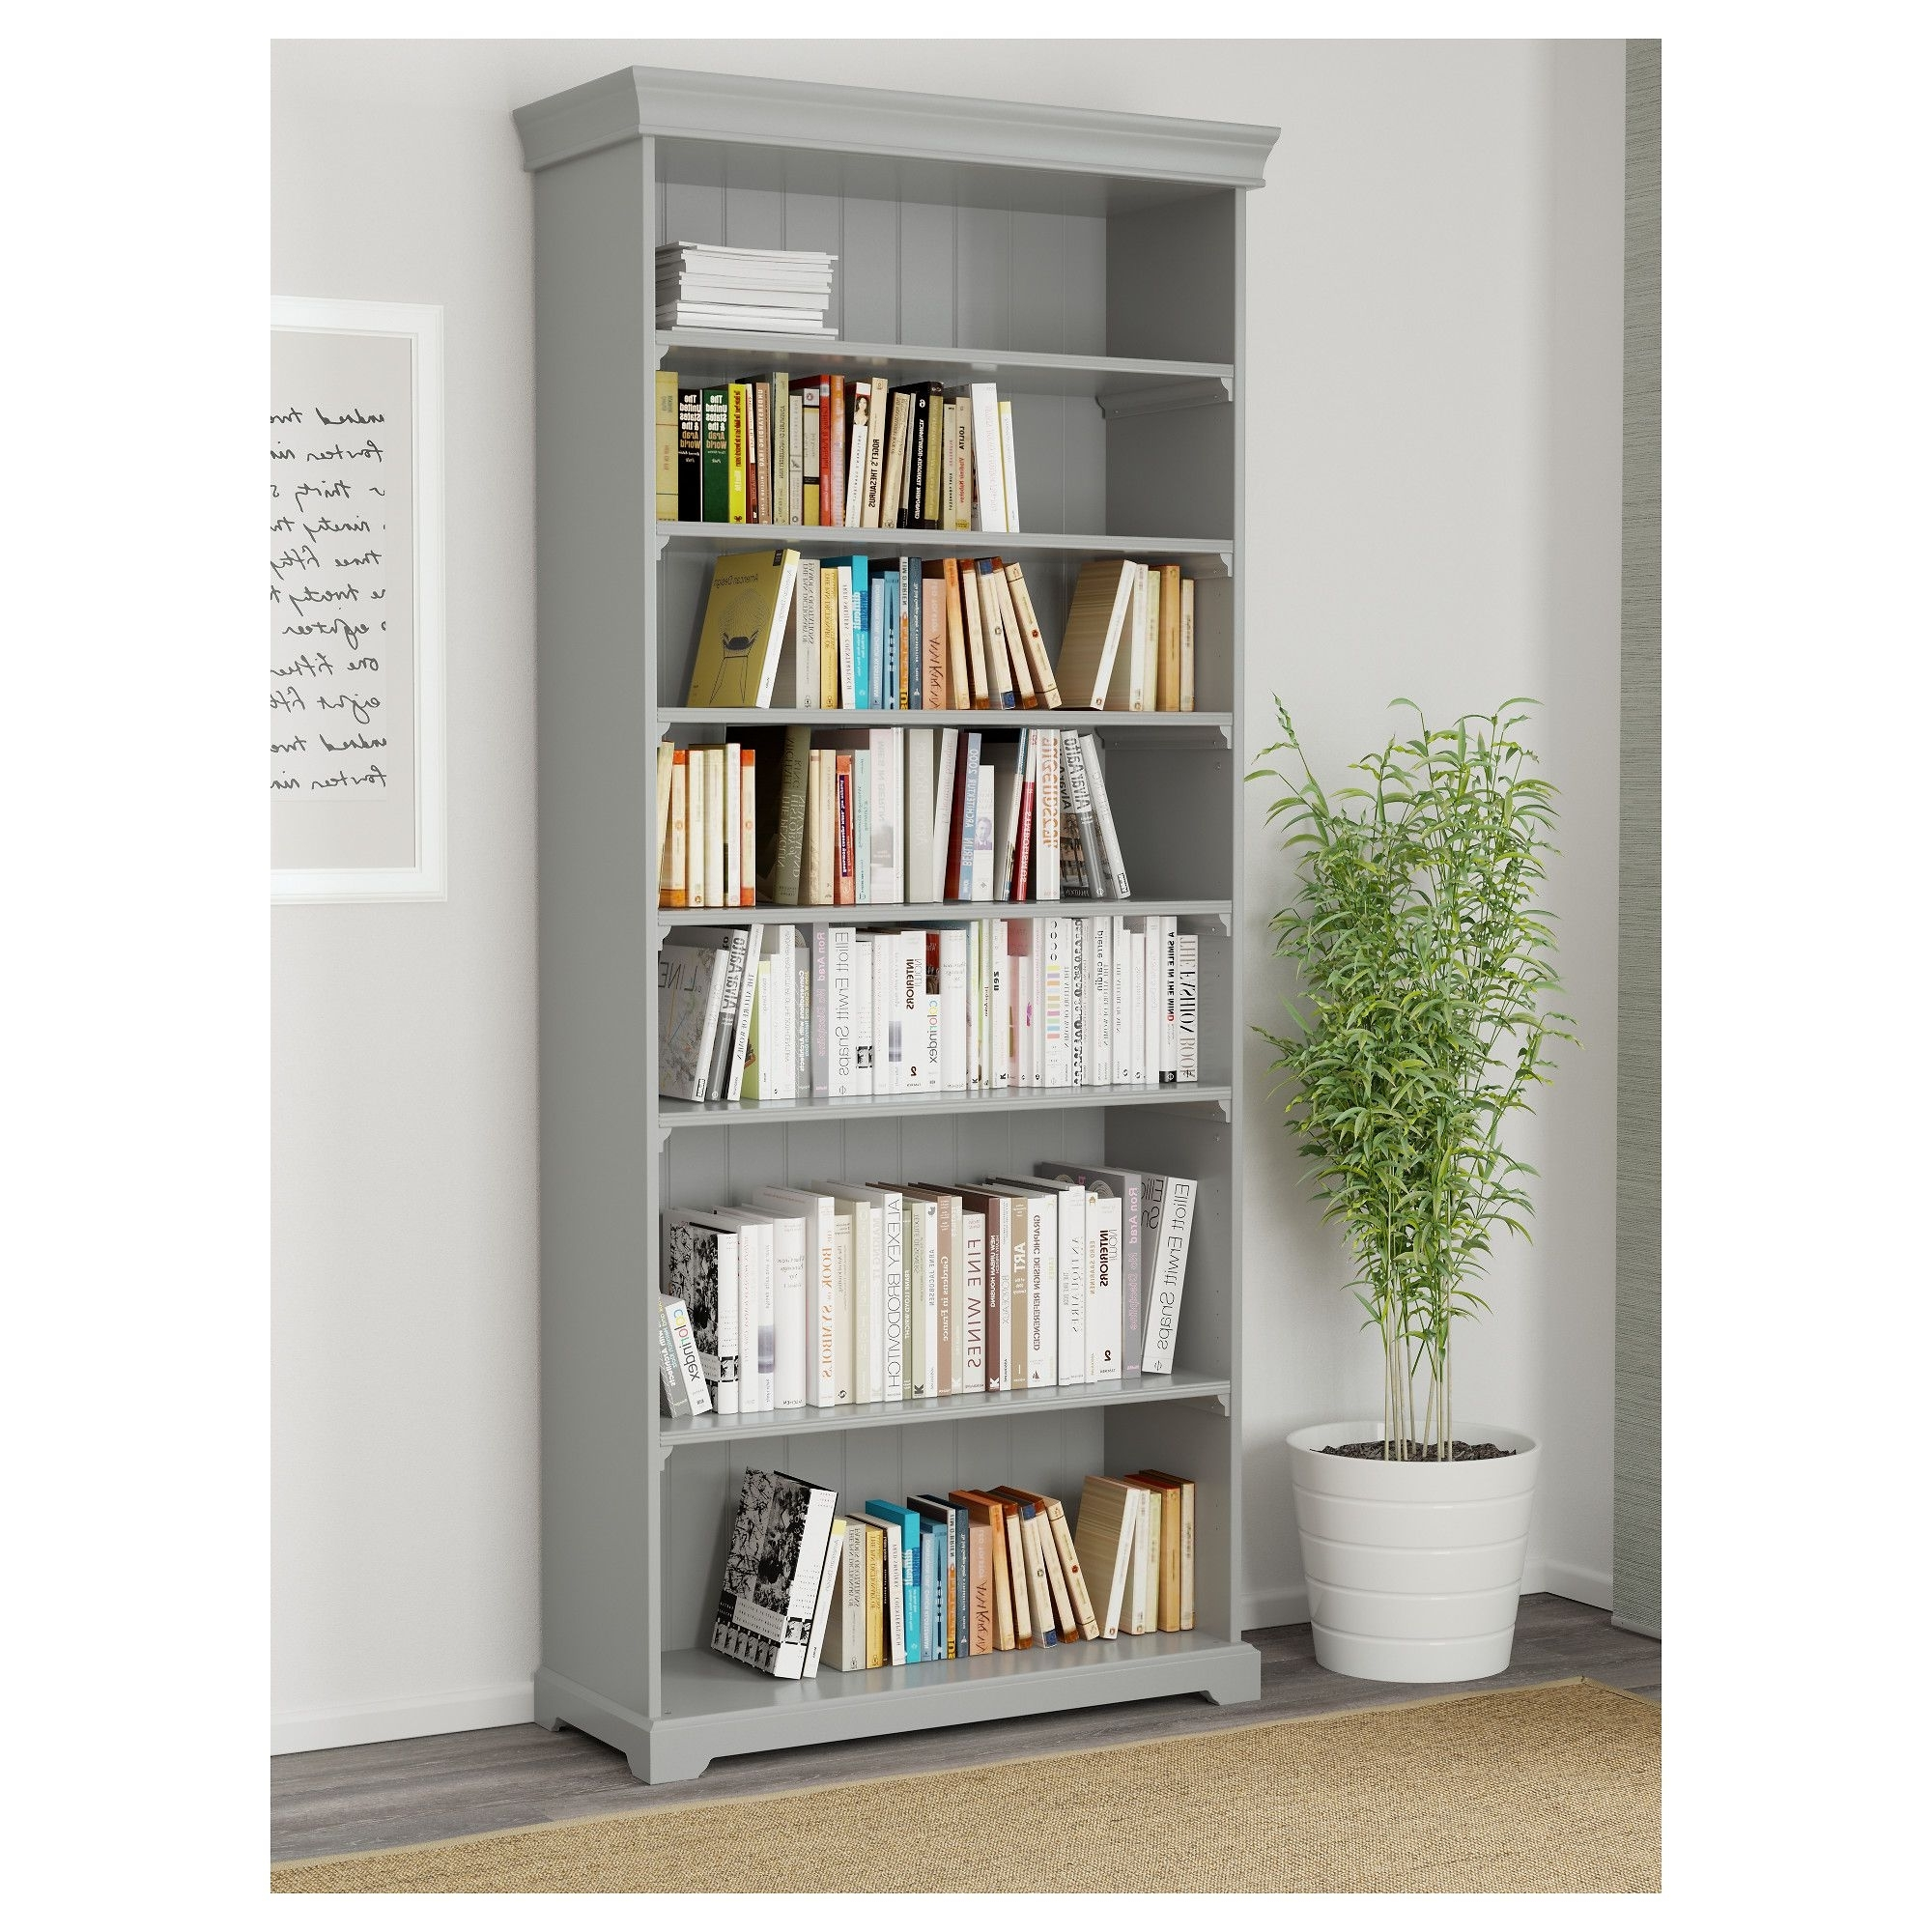 Liatorp Bookcases Intended For Well Known Liatorp Bookcase, Gray (View 4 of 15)